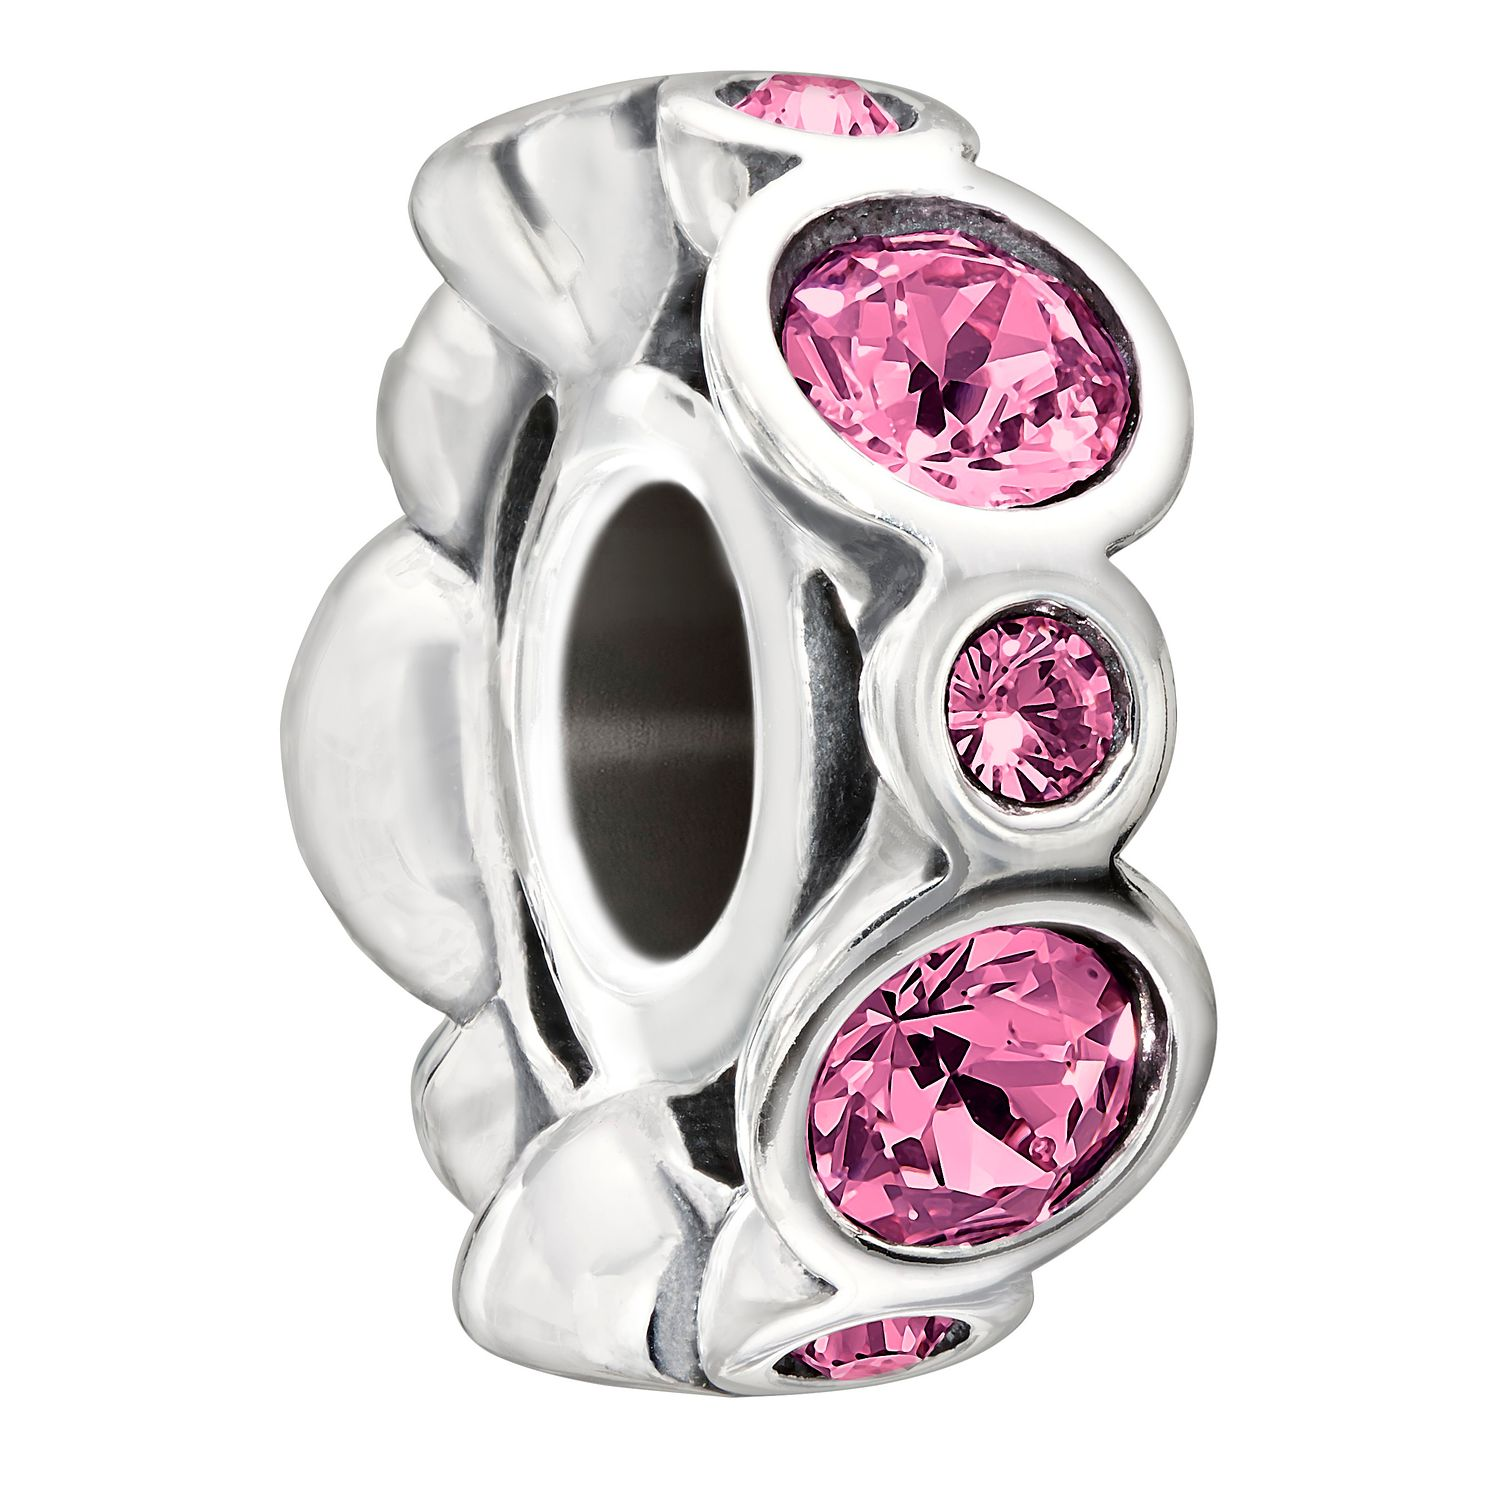 Chamilia Birthstone Jewels October Swarovski Crystal Charm - Product number 1485652